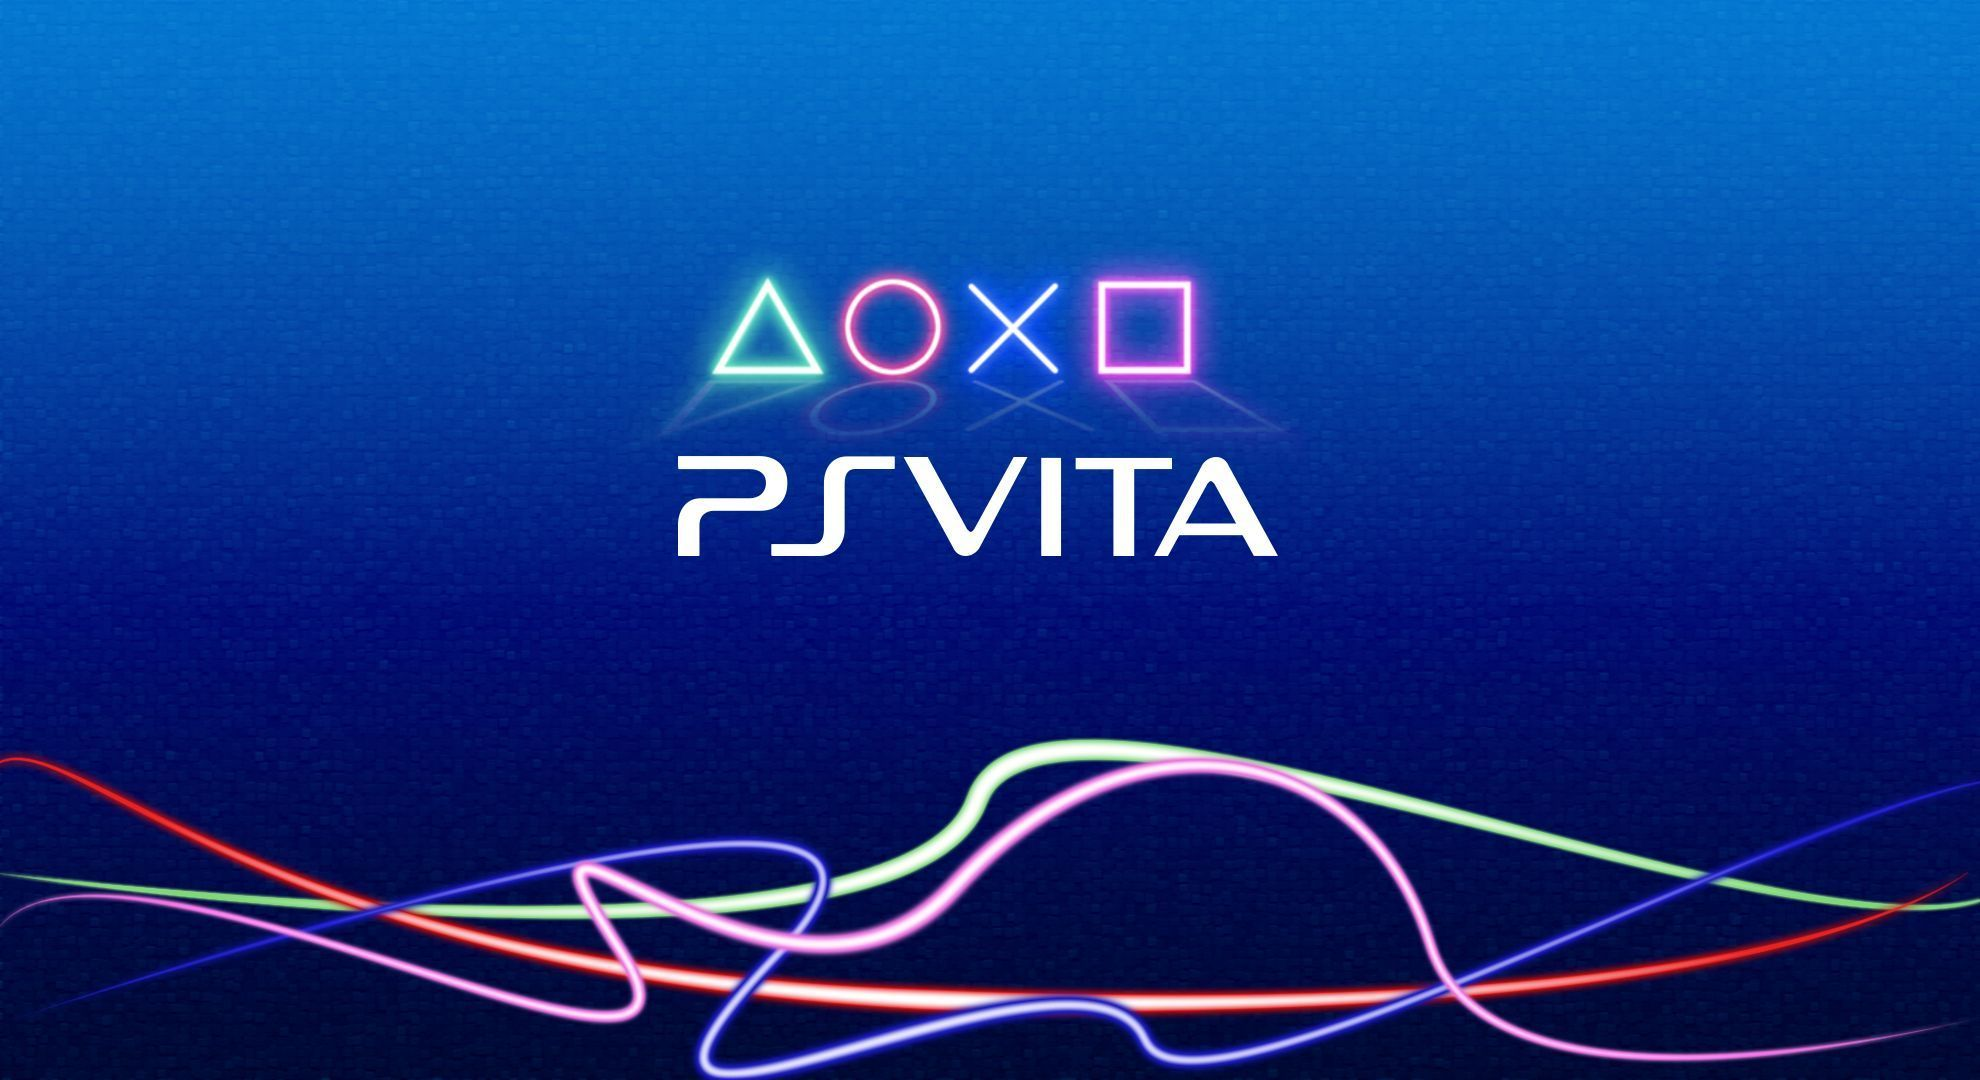 revolution PS Vita Wallpapers  Free PS Vita Themes and Wallpapers 1980x1080